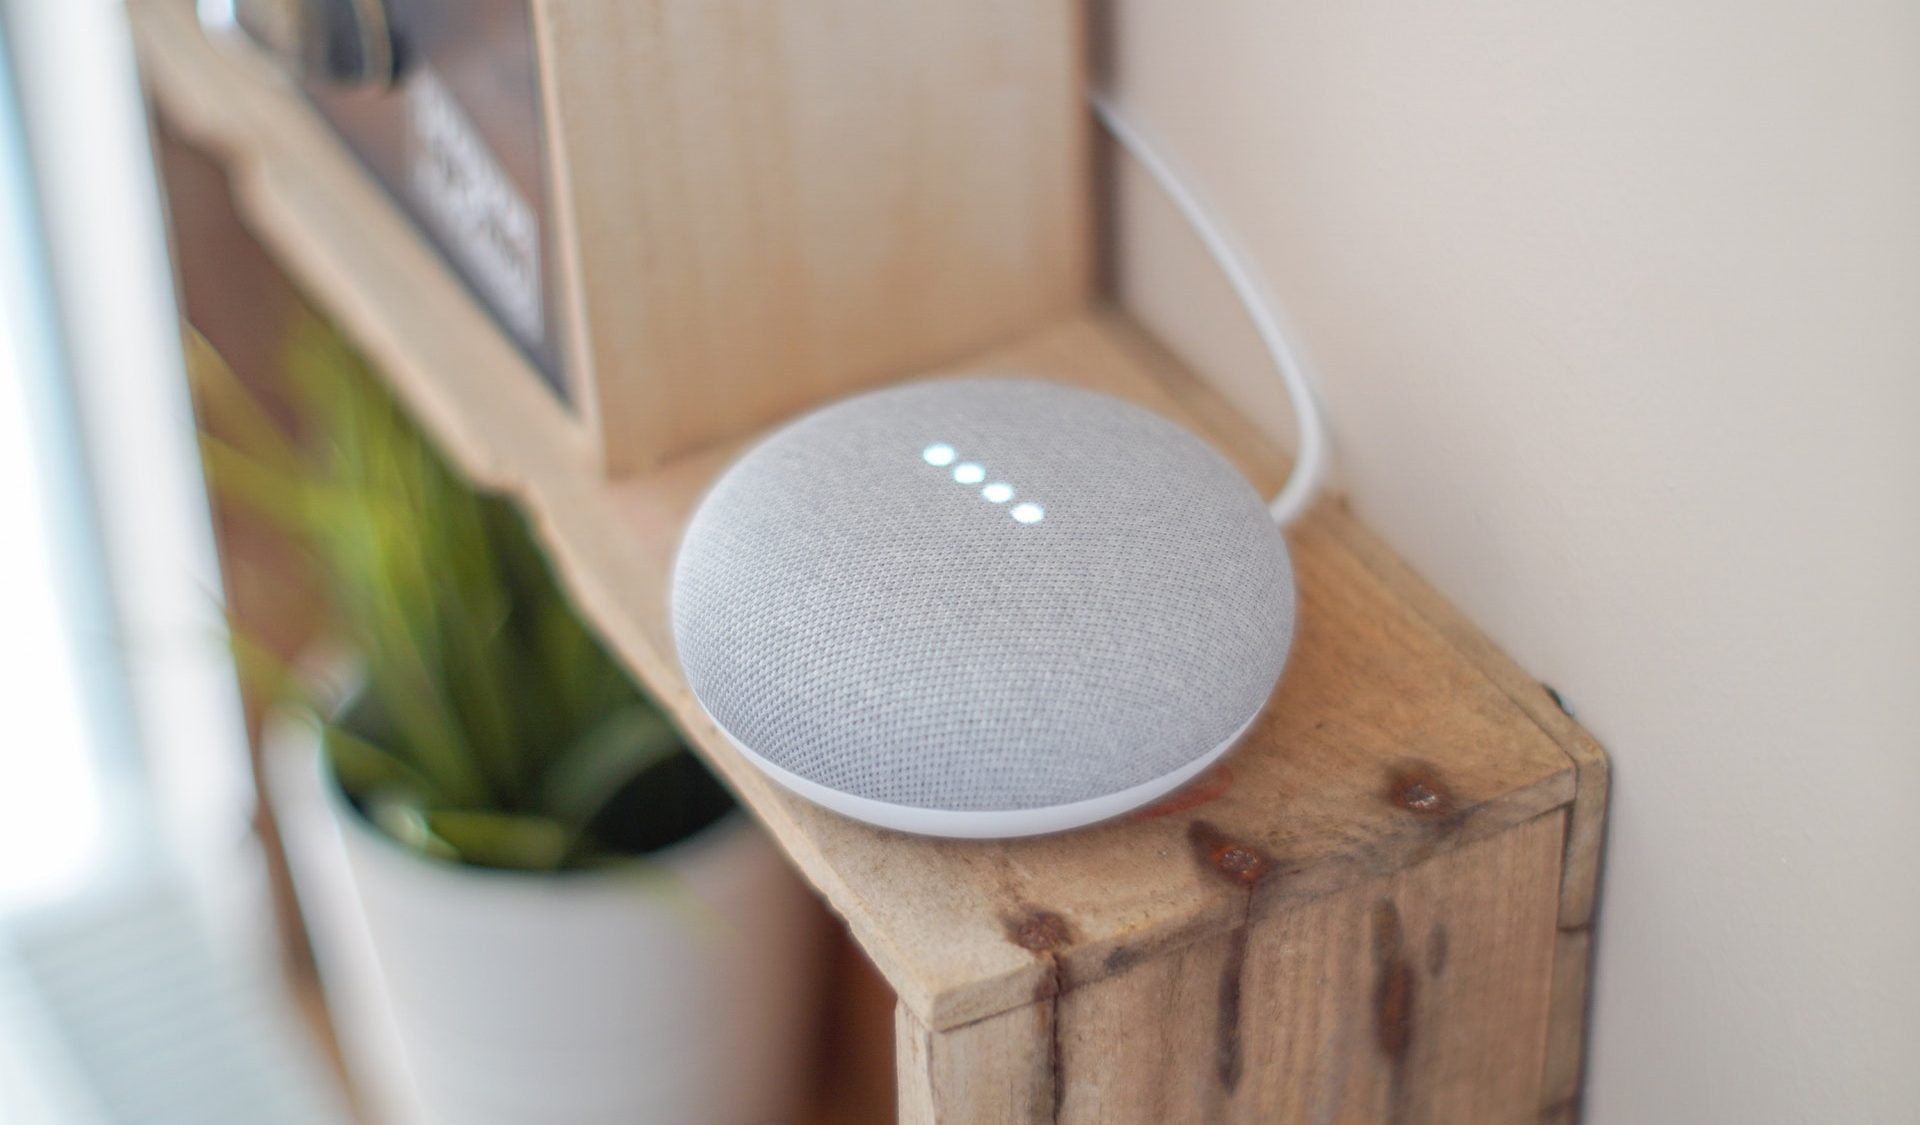 Upcoming Nest Mini is a Google Home Mini 2 with improved sound & more